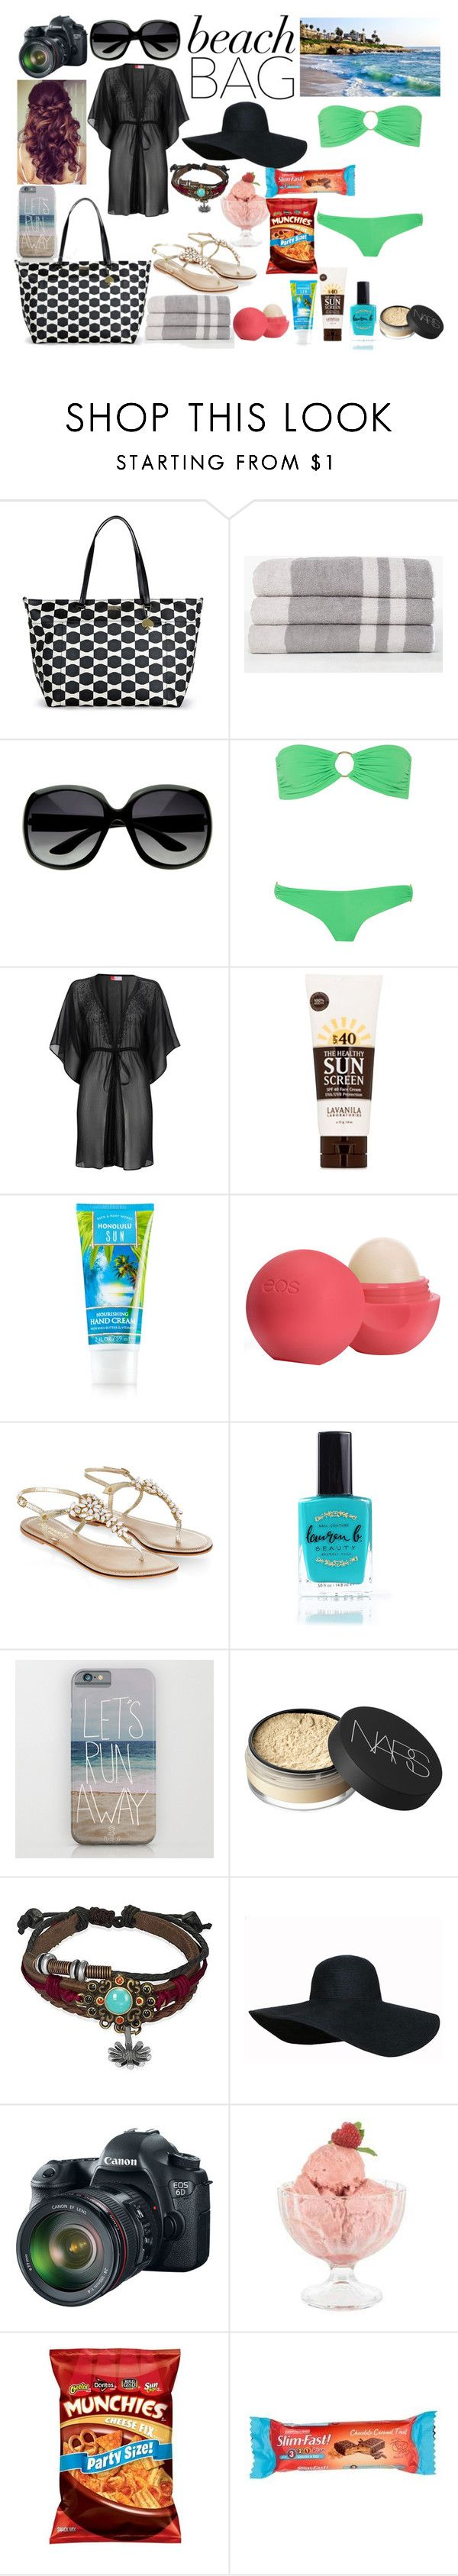 """""""whats in my beach bag"""" by sparkflower ❤ liked on Polyvore featuring Kate Spade, James Perse, Melissa Odabash, Wallis, Lavanila, Eos, Monsoon, Lauren B. Beauty, NARS Cosmetics and Bling Jewelry"""